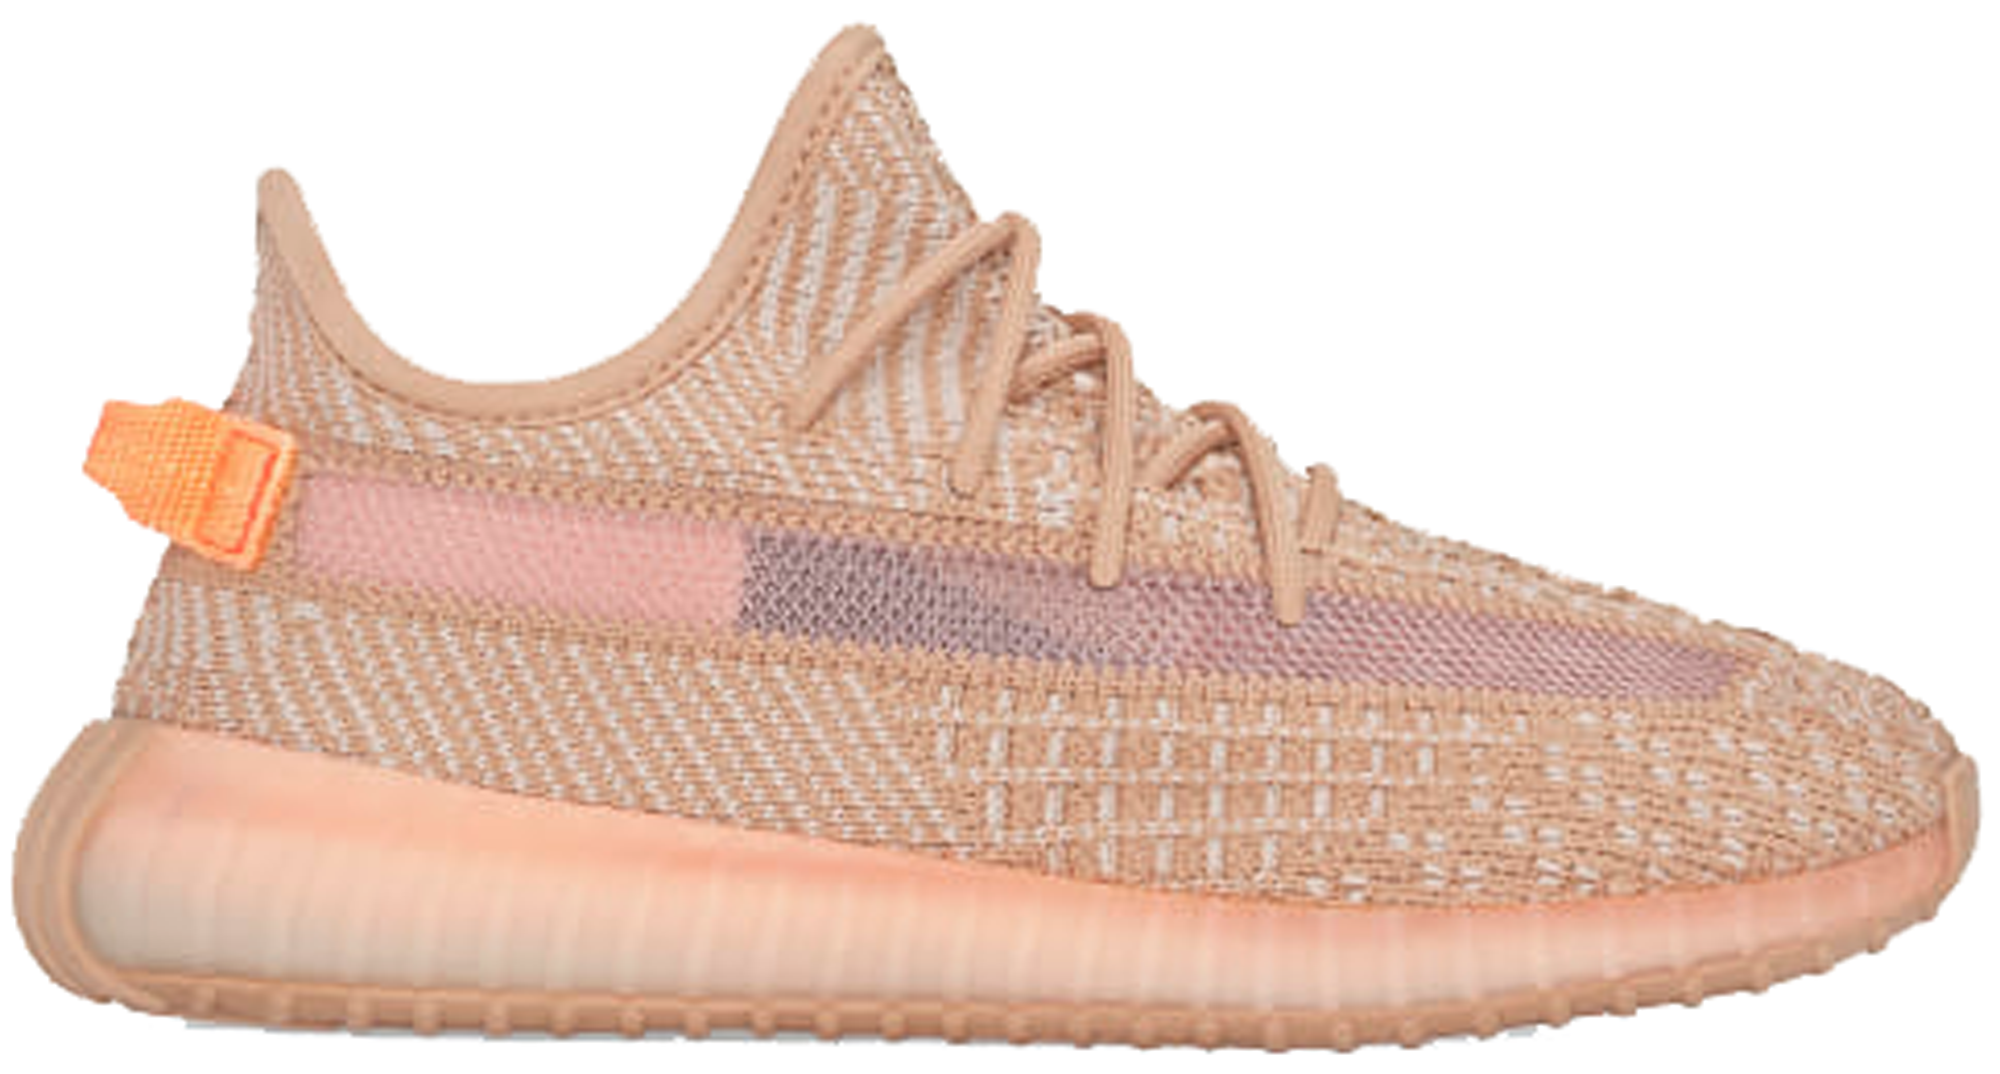 adidas Yeezy Boost 350 V2 Clay (PS)